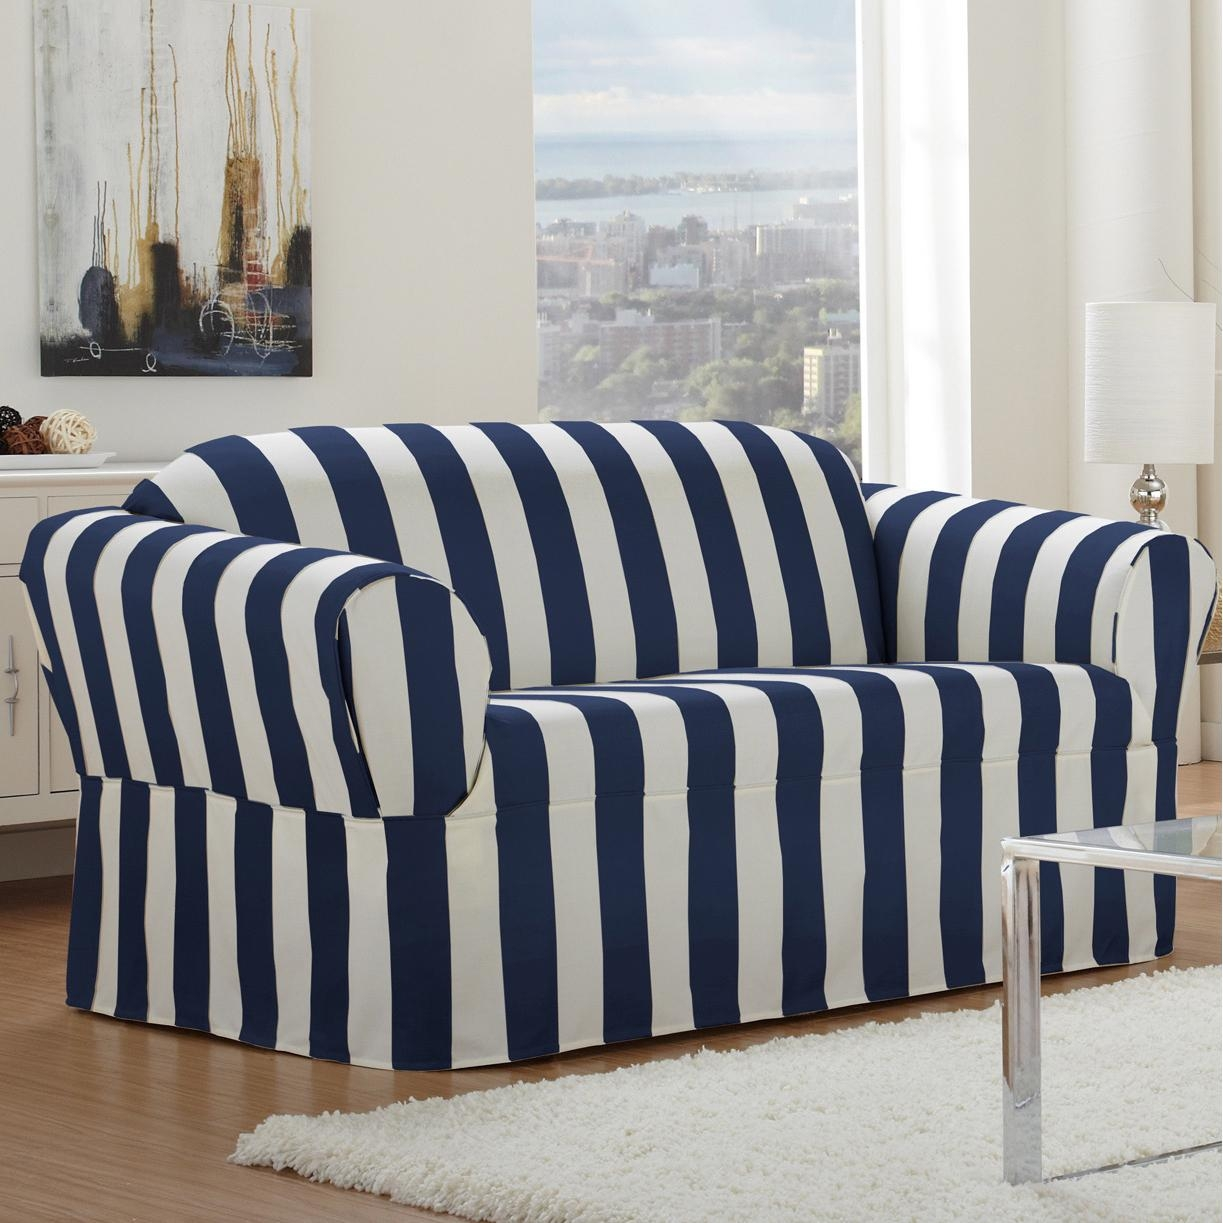 white and blue sofa futon bed singapore 20 43 choices of striped slipcovers ideas